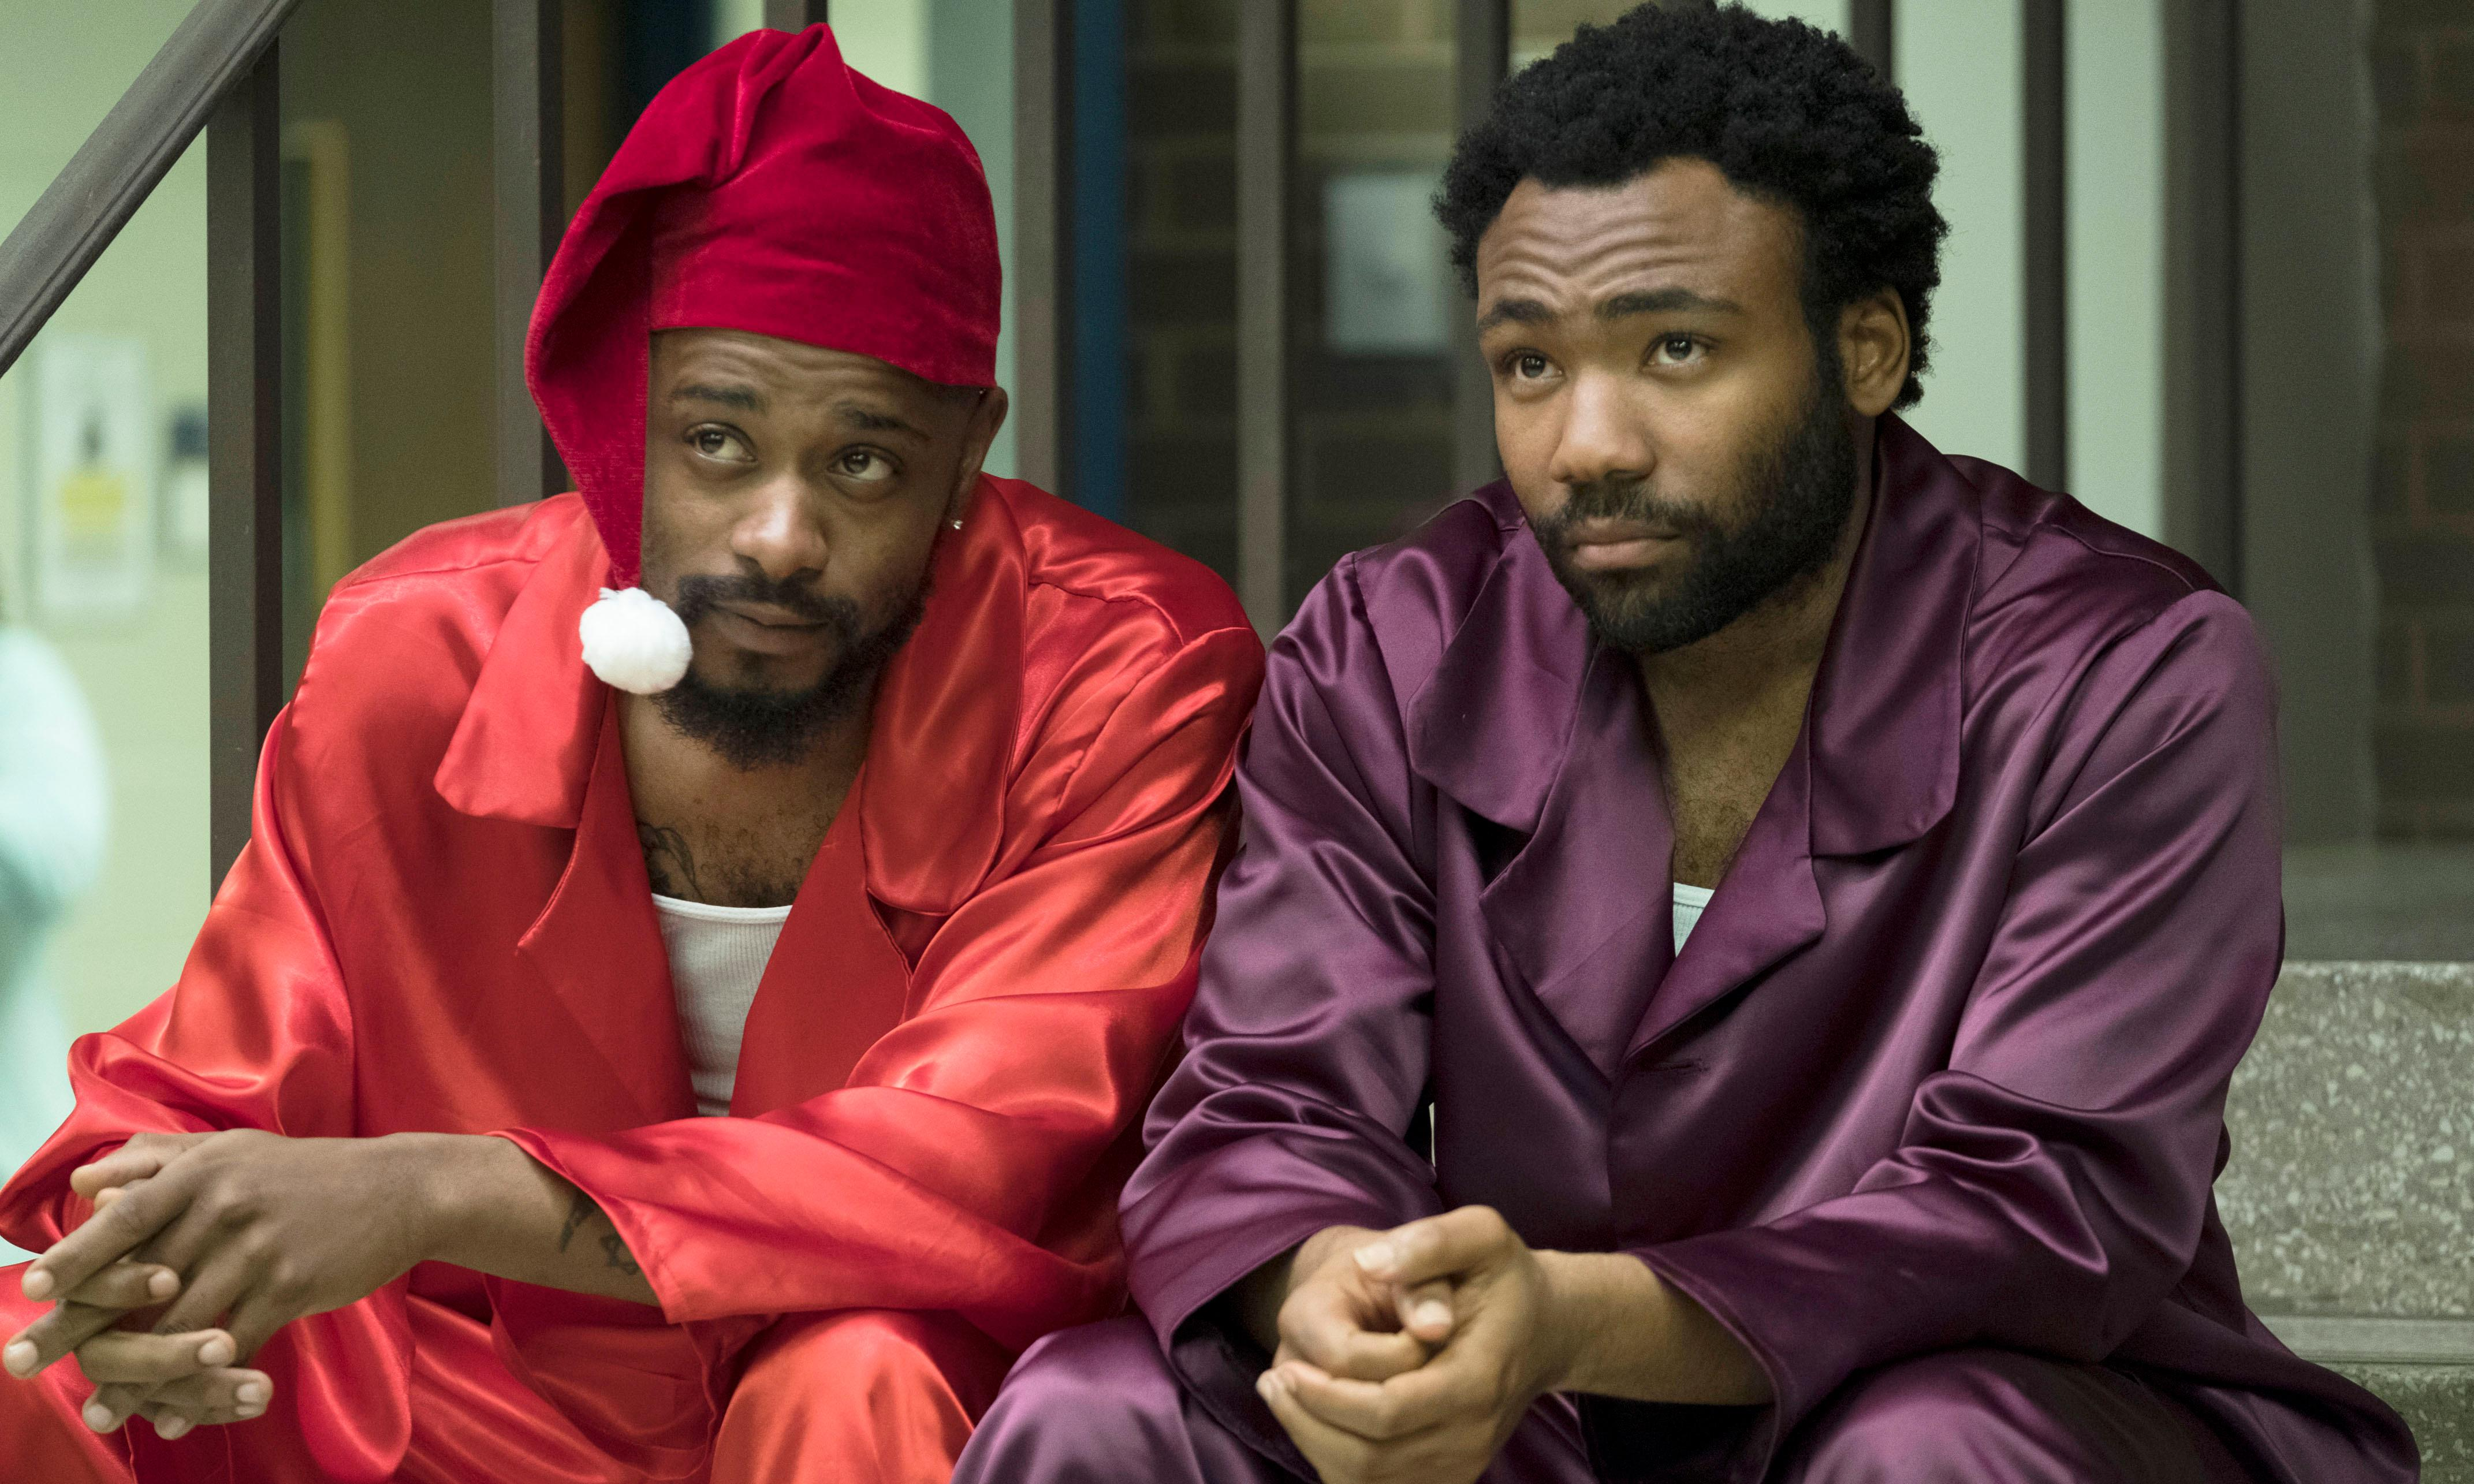 TV tonight: an audacious triple bill to end Atlanta – Robbin' Season